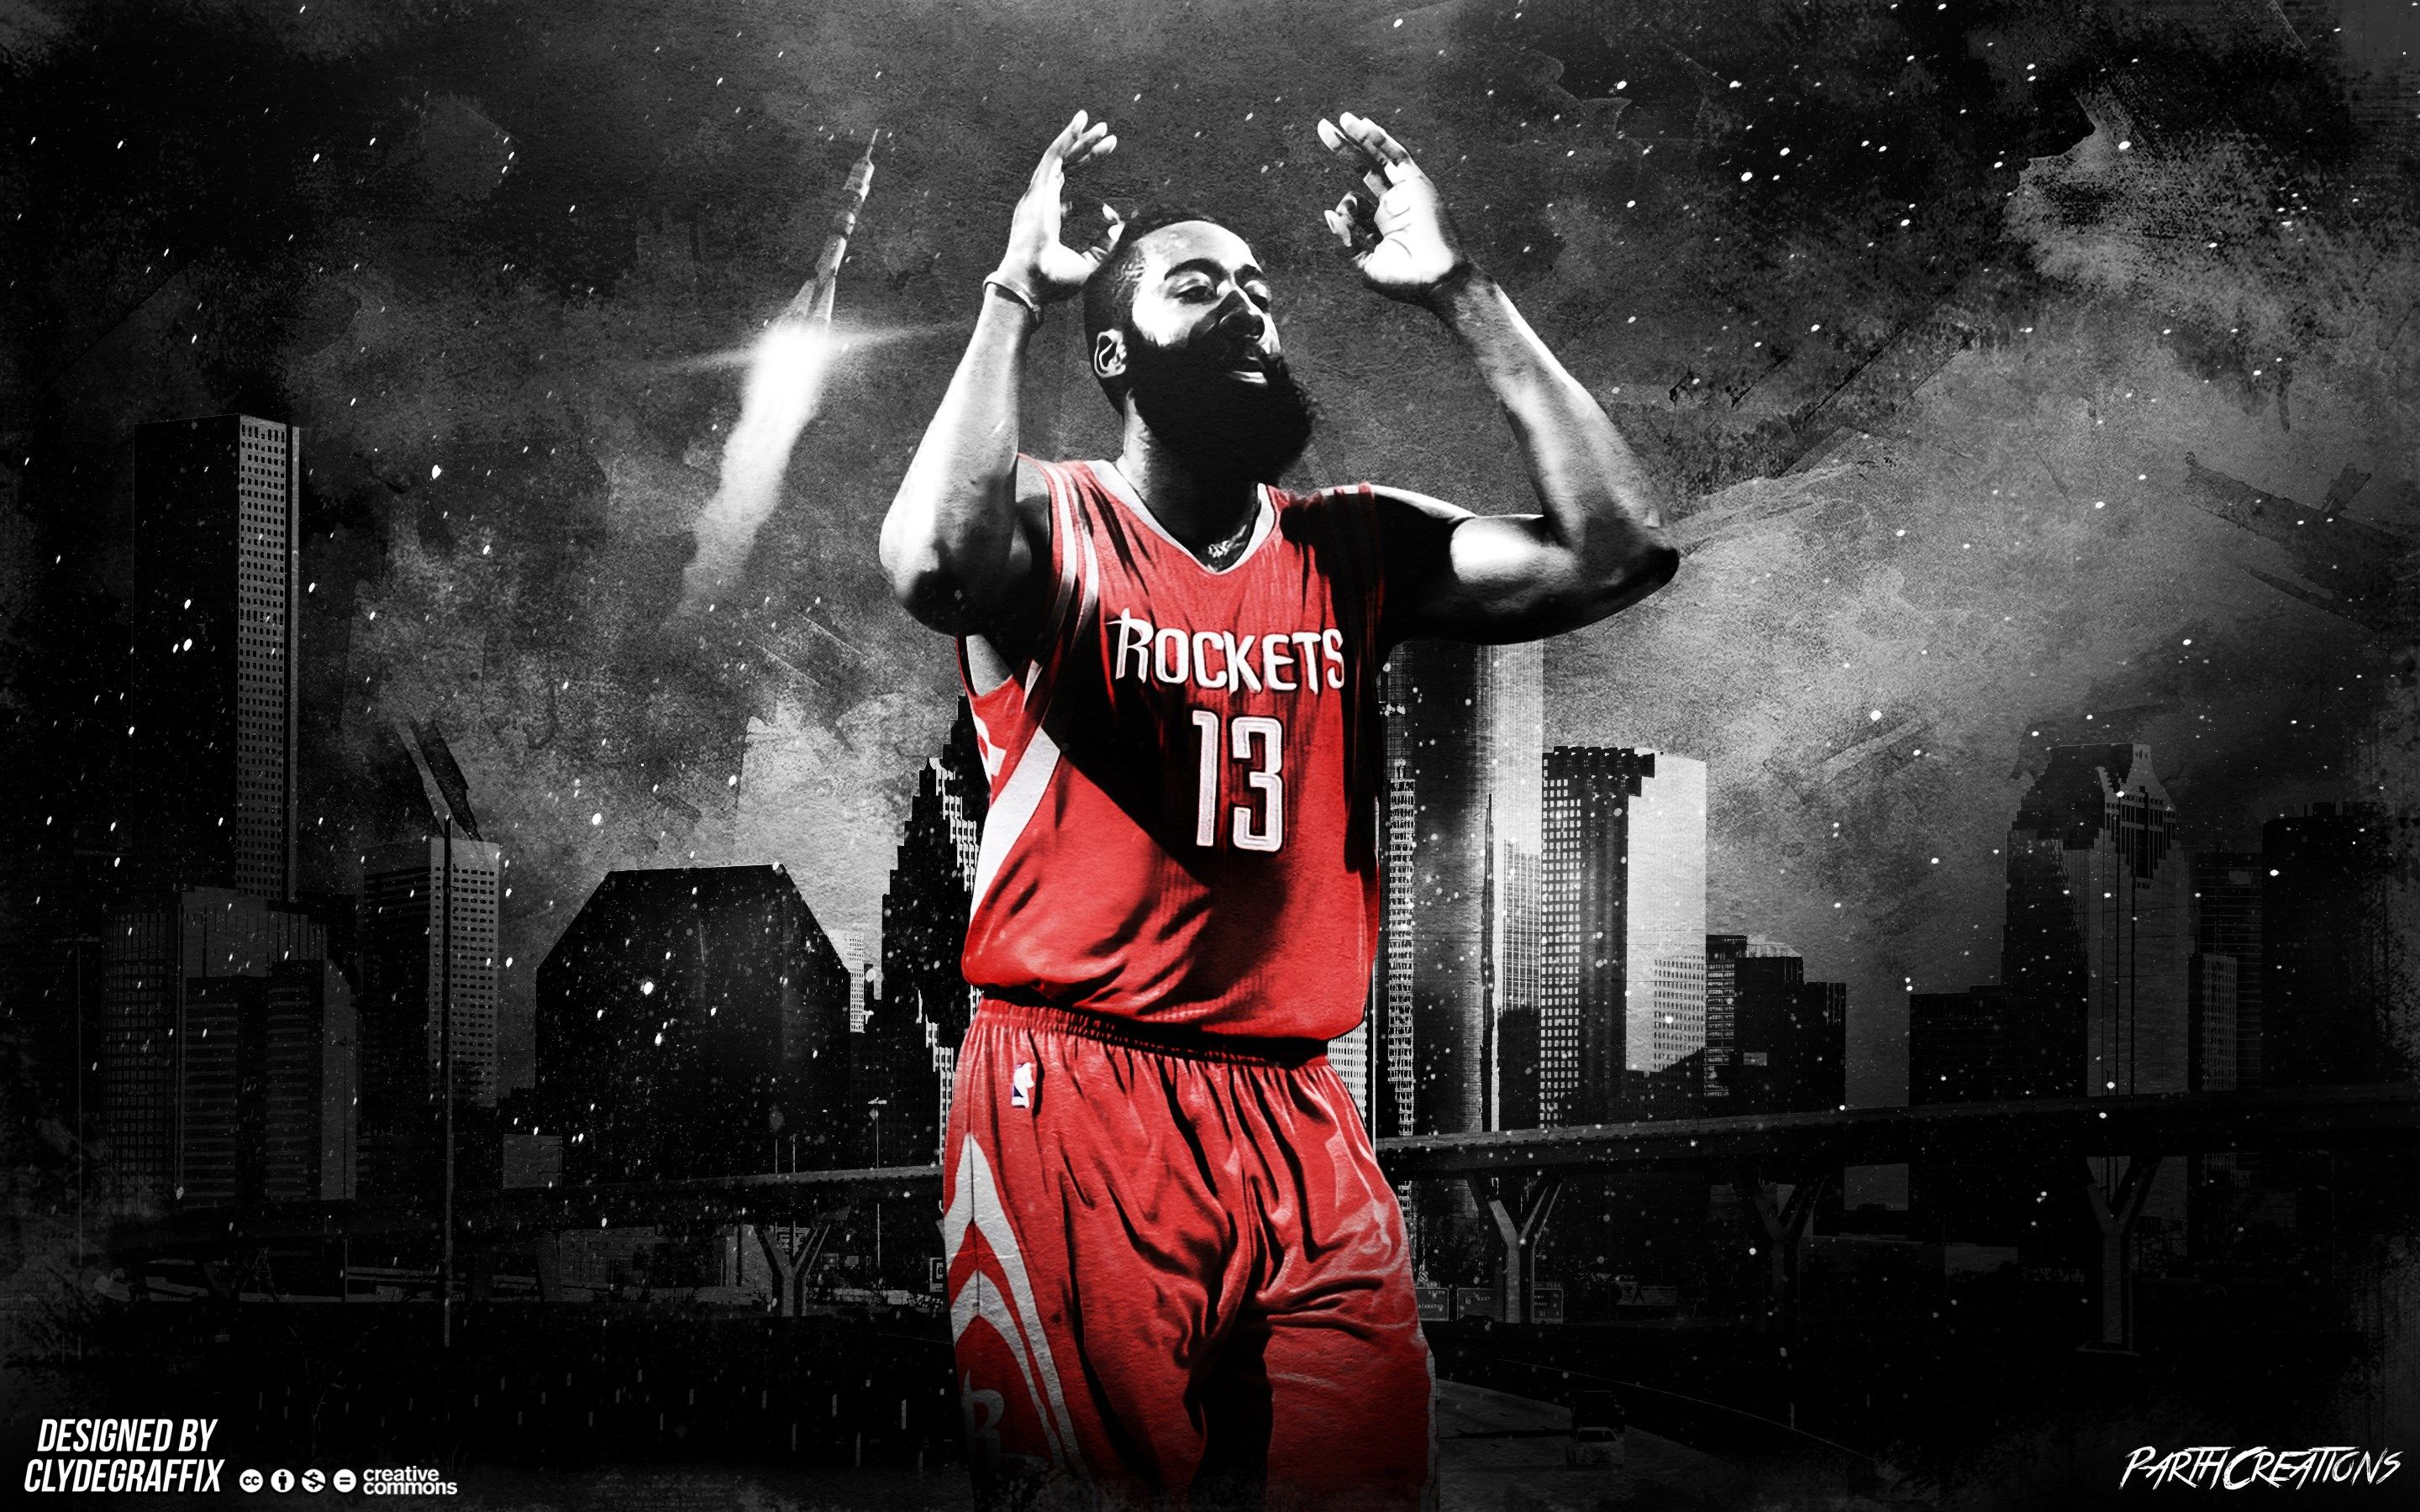 Top Free Dope Nba Backgrounds: James Harden Wallpapers 1080p High Quality